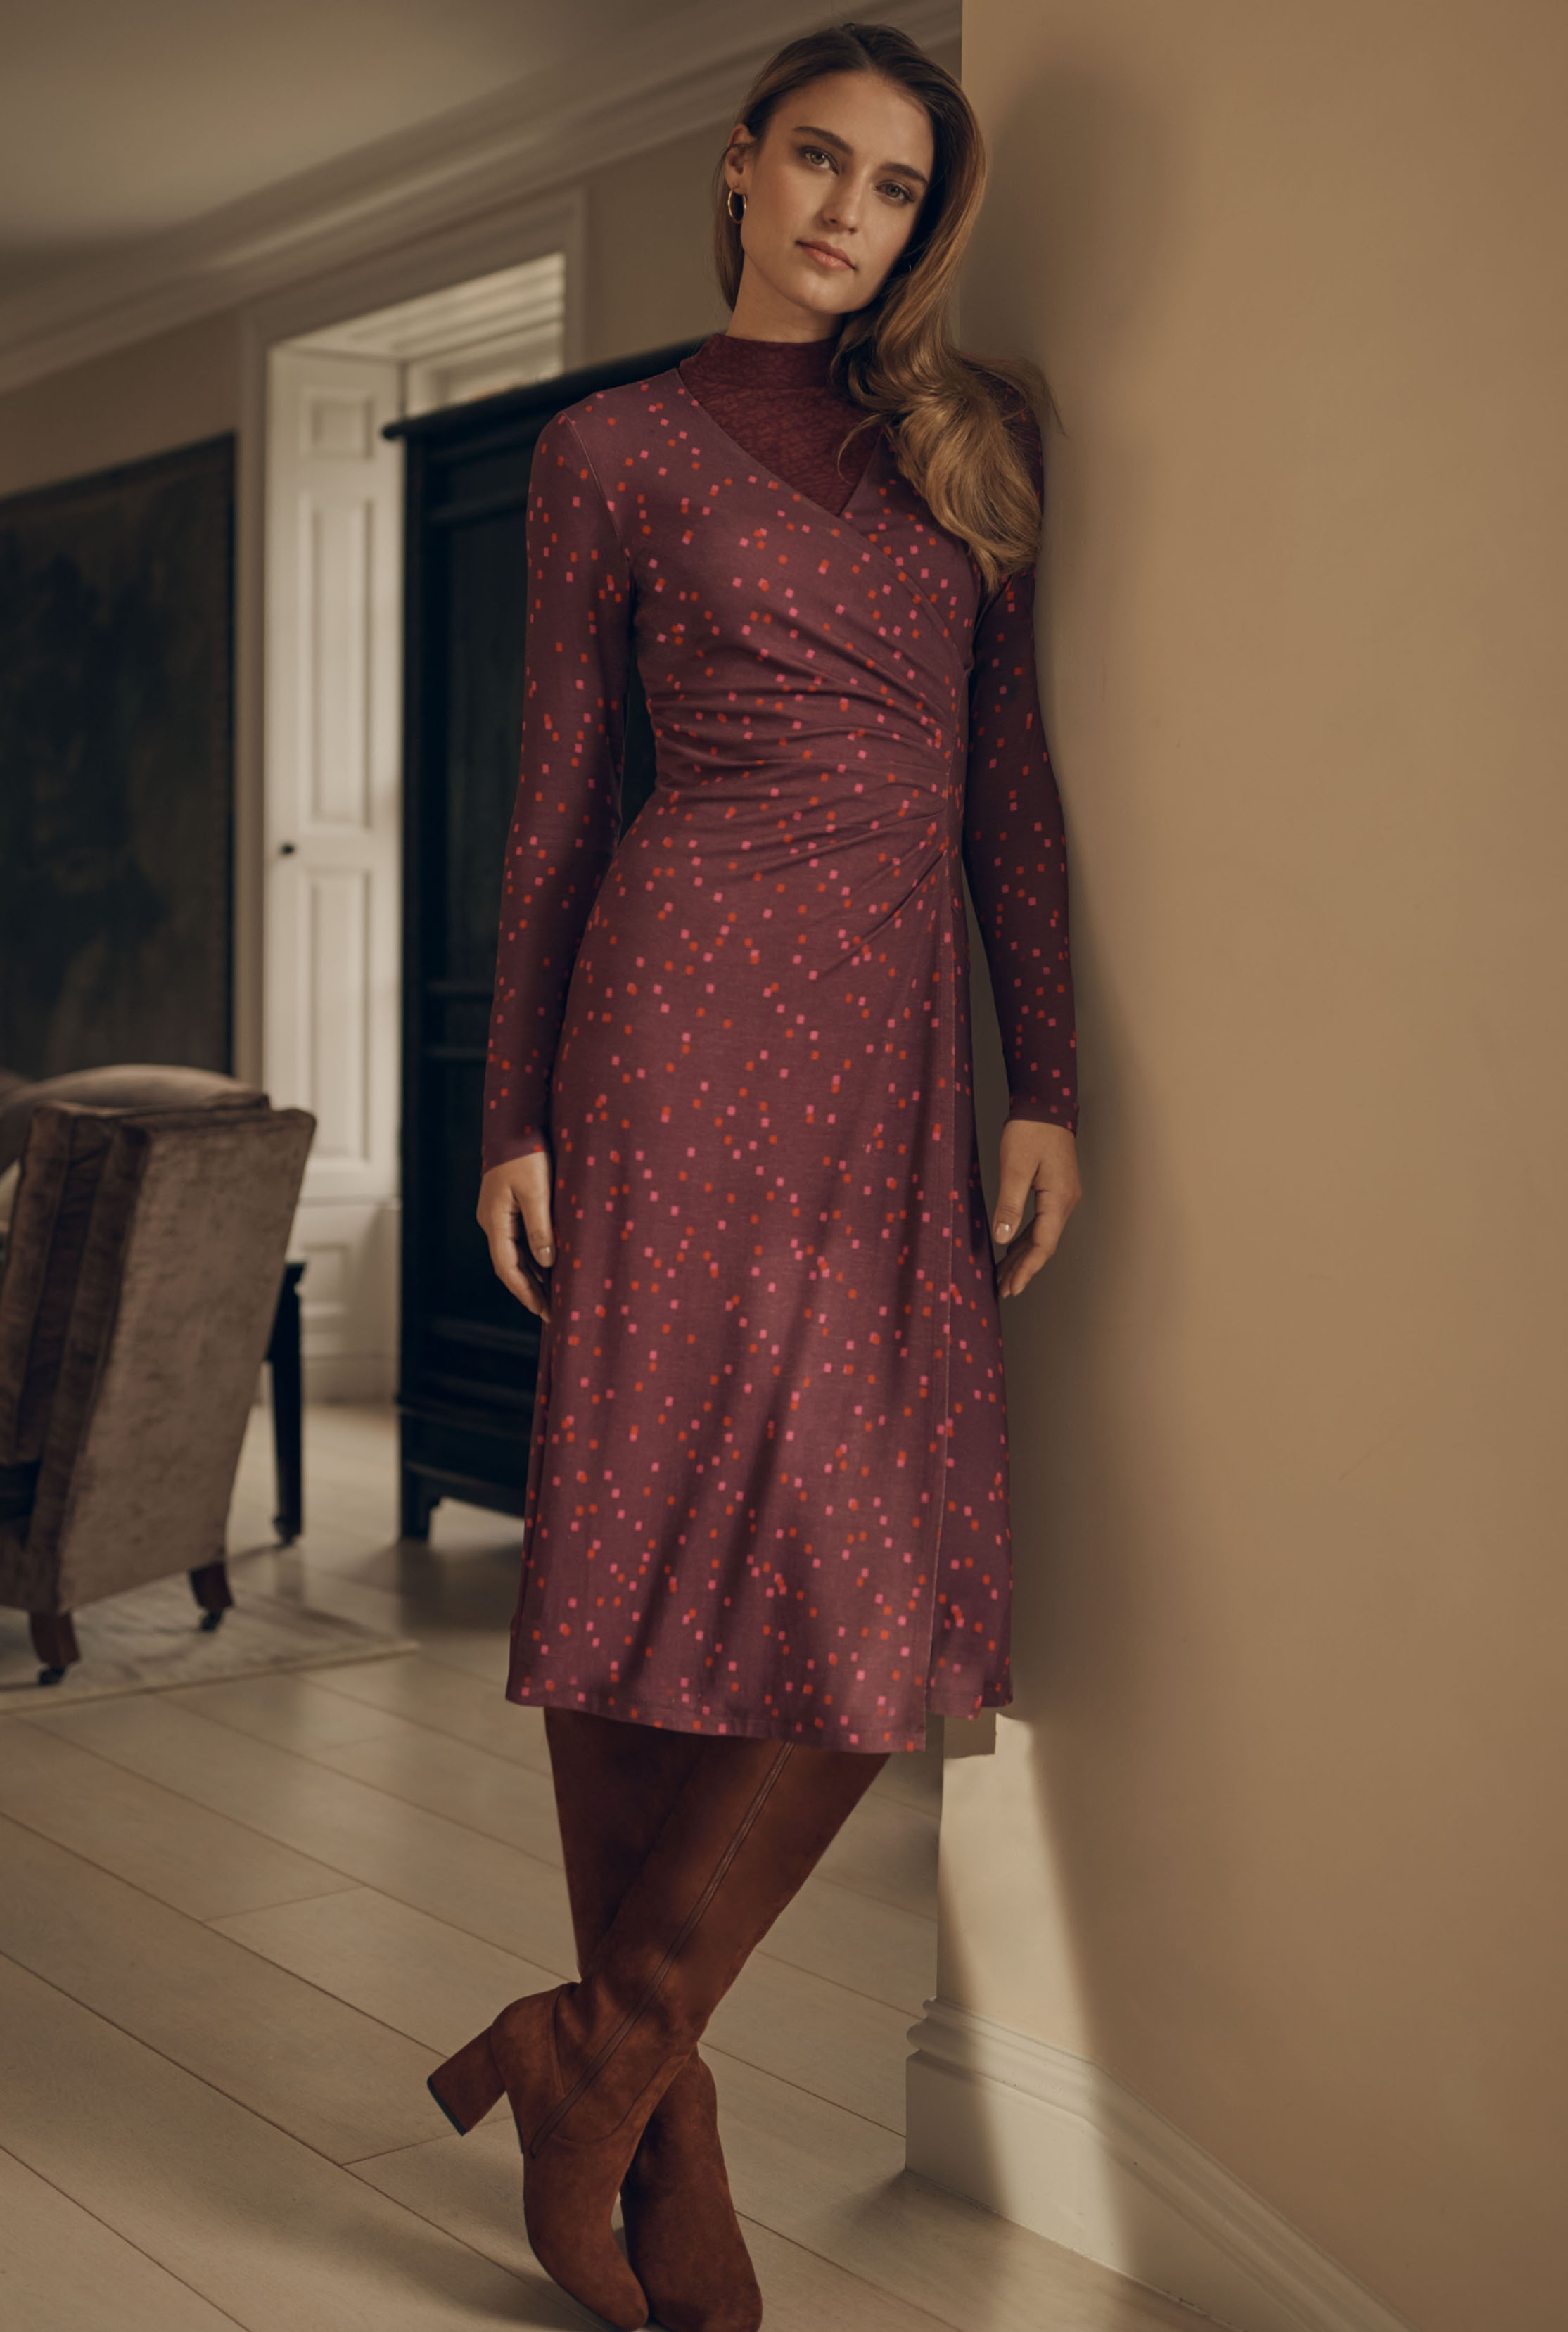 Burgundy Square Print Bodycon Dress